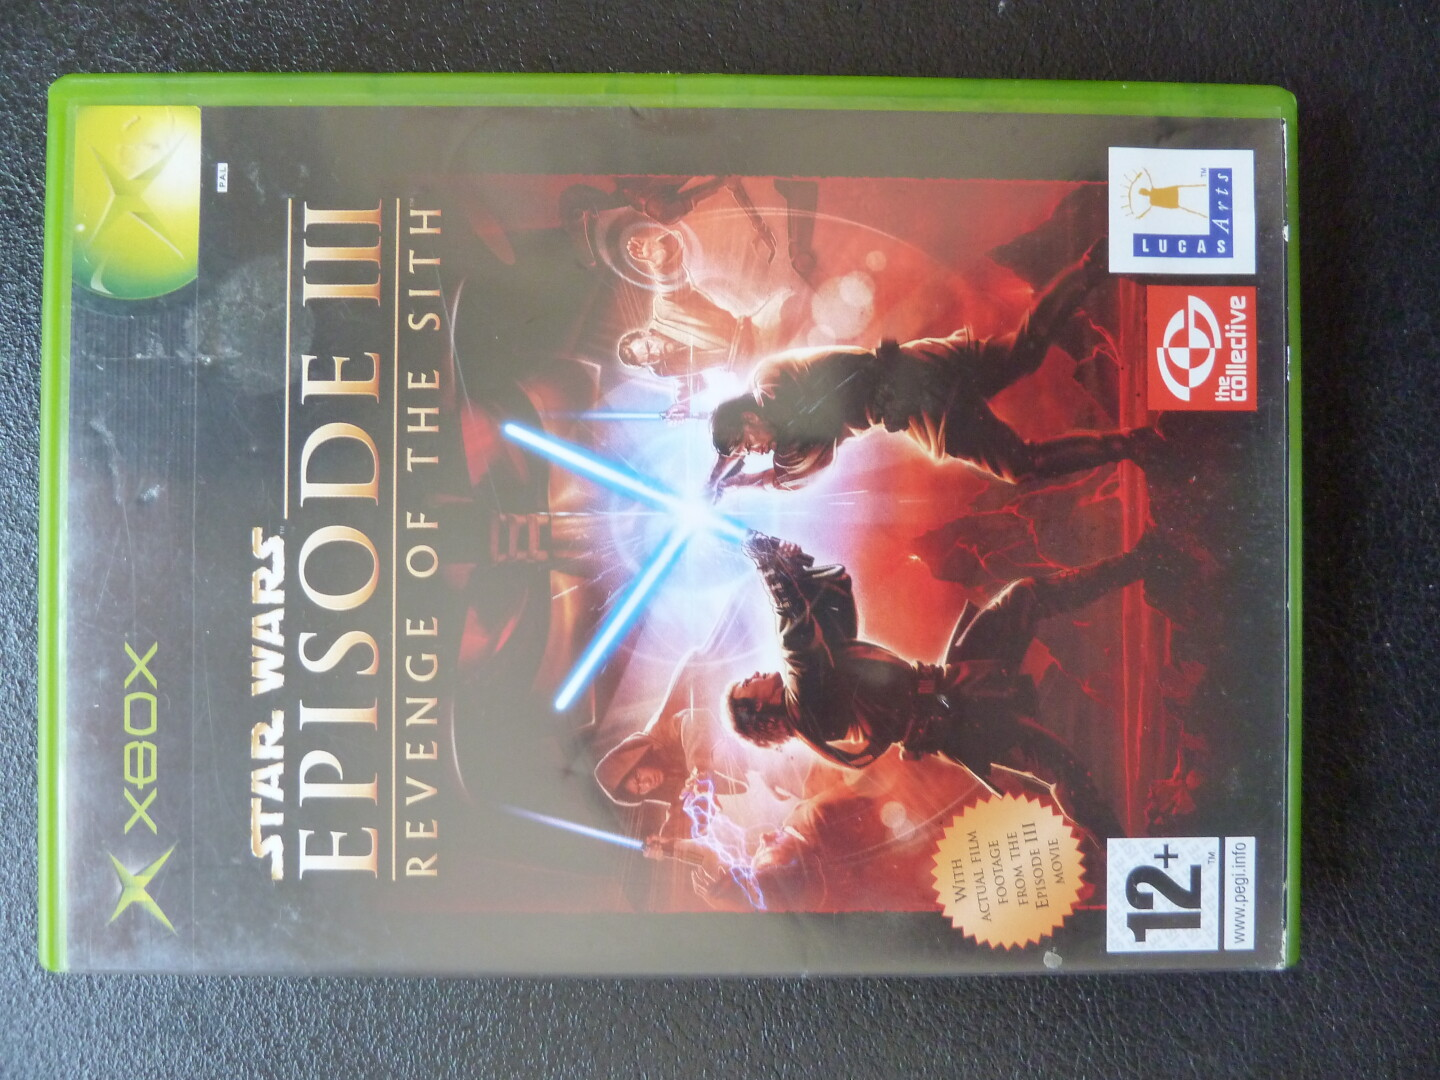 SW Episode 3 Revenge of the Sith Xbox front